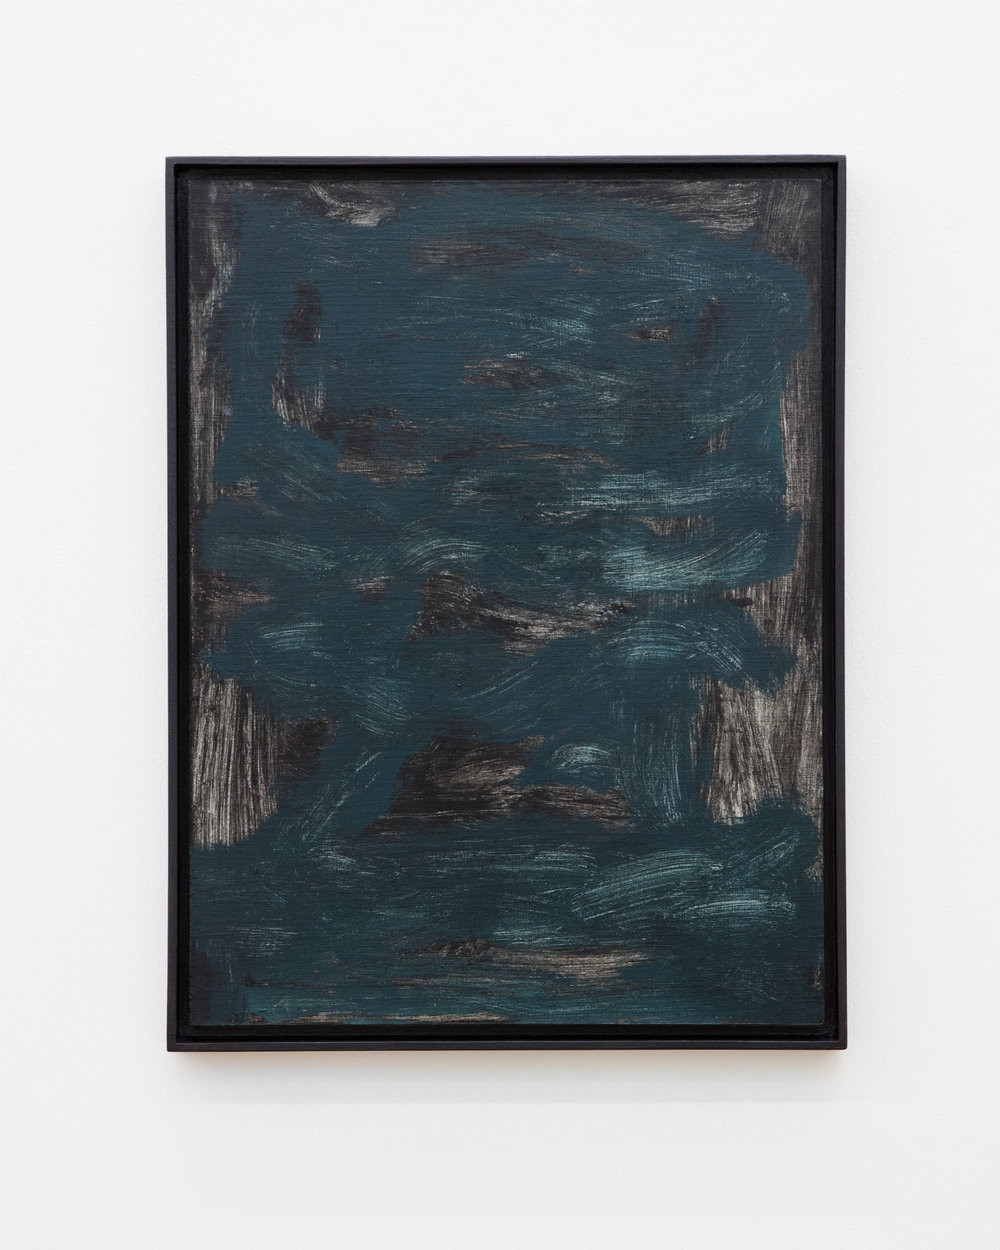 Veronika Hilger: Untitled, 2019, oil on paper on MDF in artists frame, 39,7 x 29,8 cm